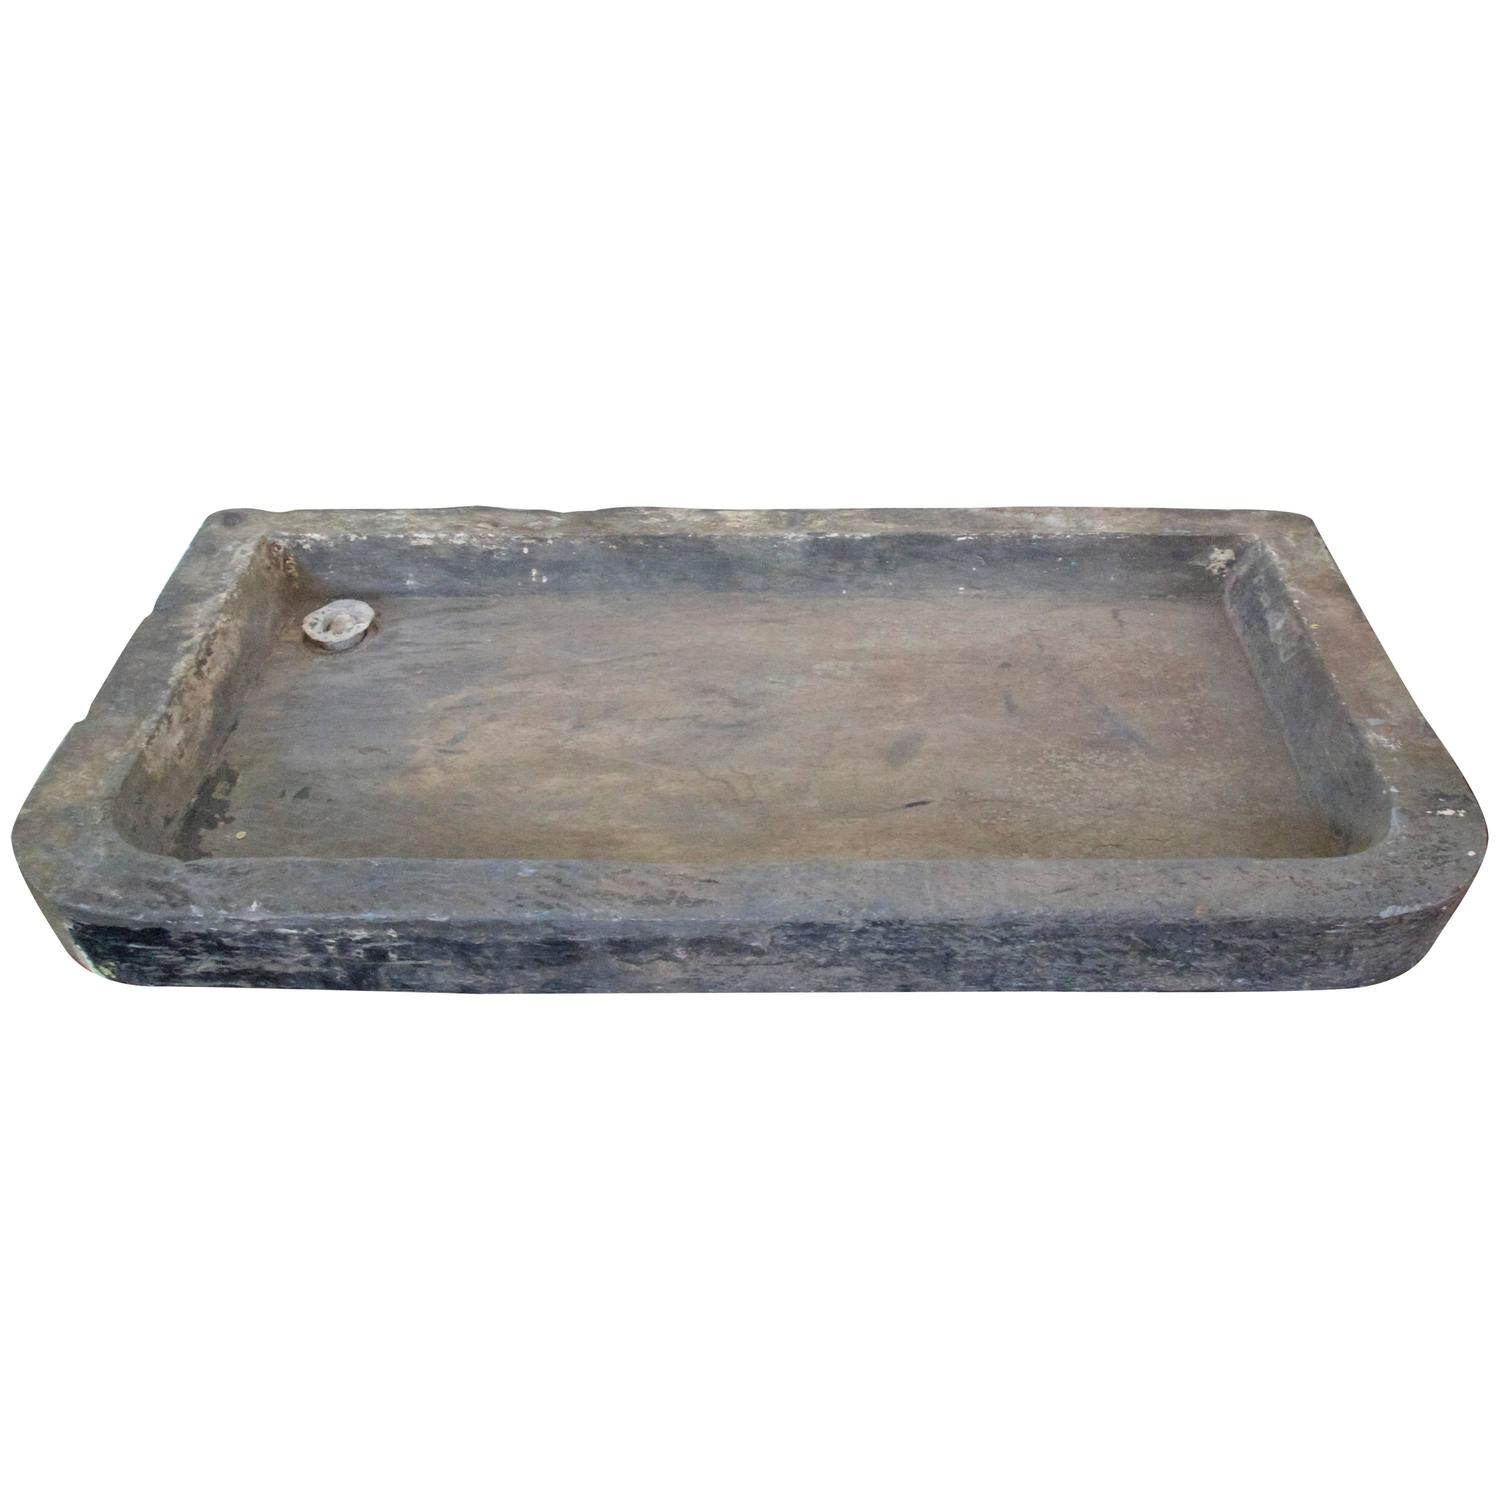 French Stone Sink : 19th C. French Stone Sink at 1stdibs